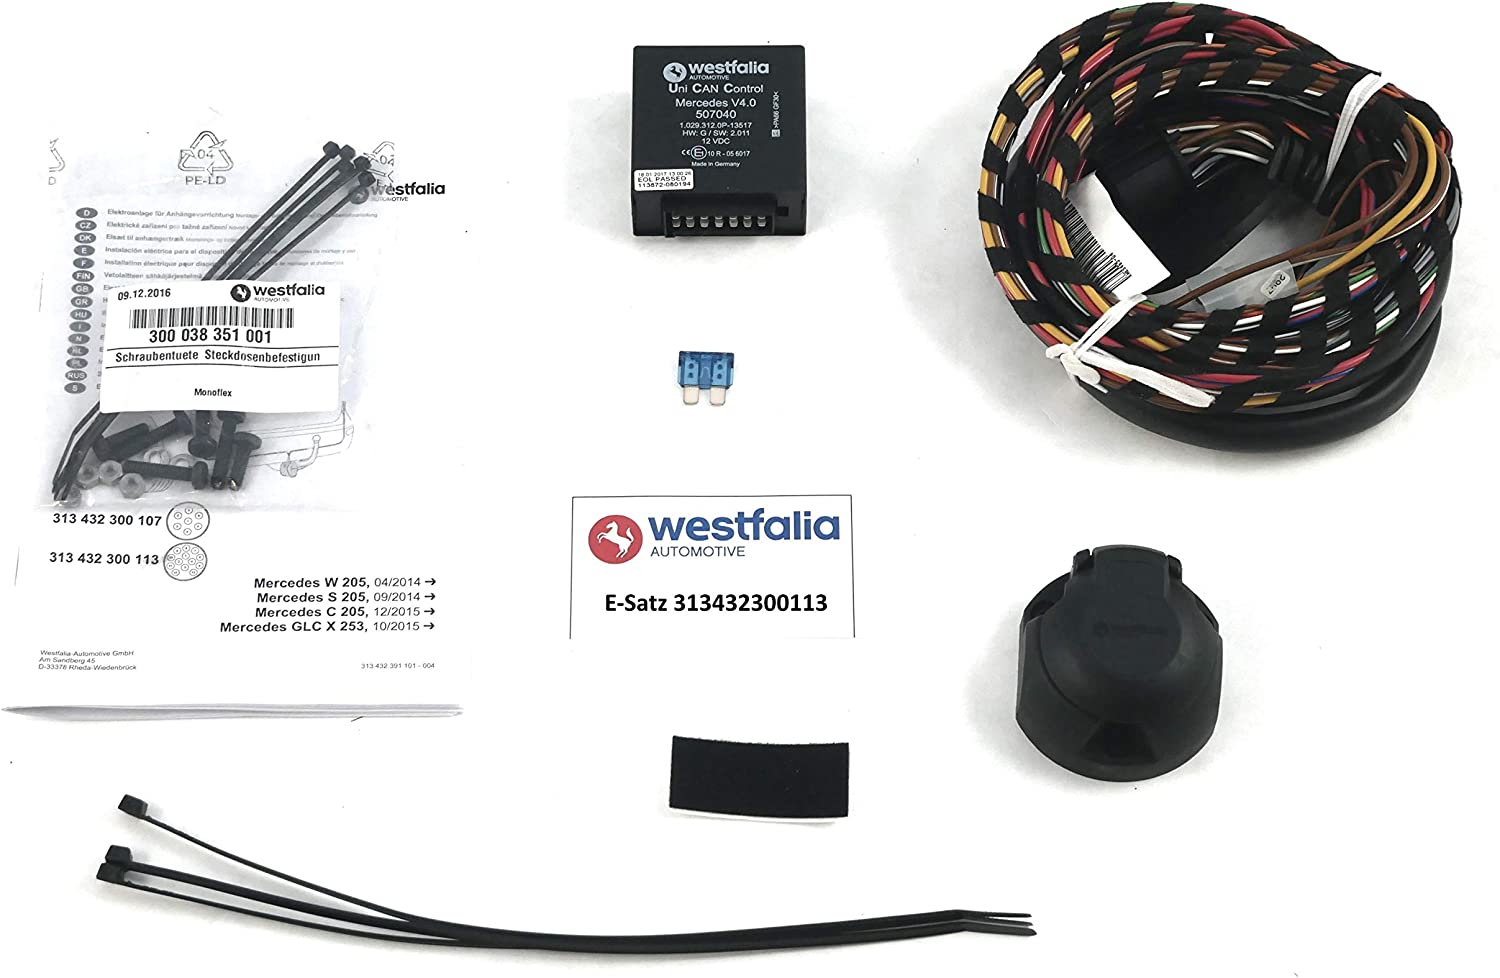 W205//S205 10//15-06//18 C205//A205 X253 C-Class Coupe//Cabrio GLC Westfalia-Automotive 313432300113 Wiring Kit 13-Pin and Vehicle-Specific for Mercedes Saloon Year 09//15-06//18 BJ 03//14-06//18